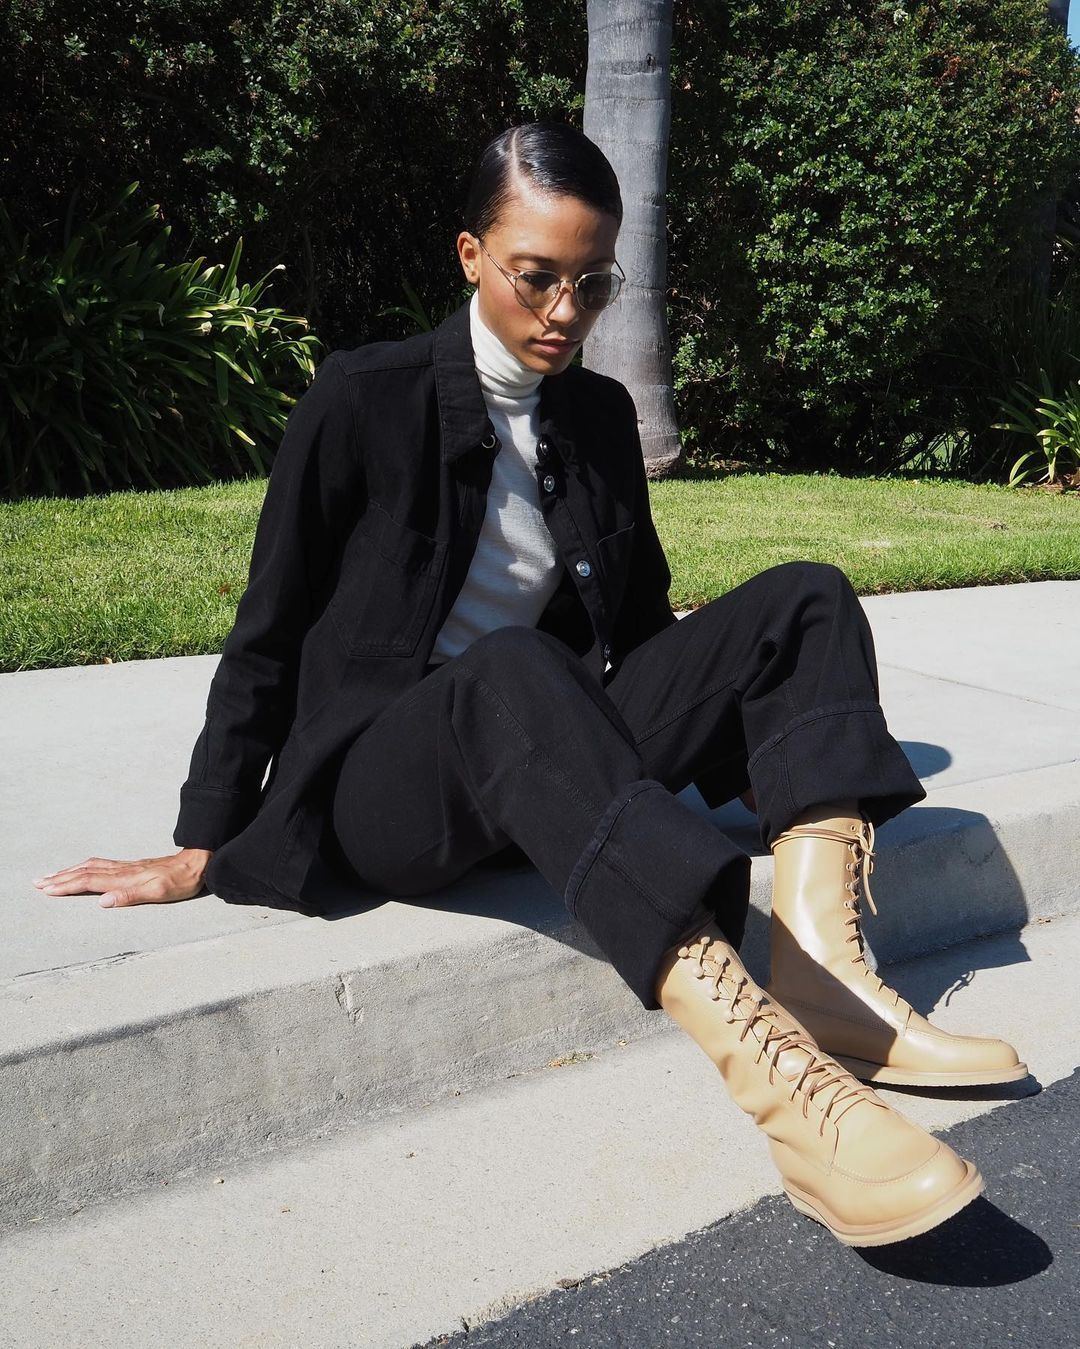 5 Boot Trends to Buy and Skip This Fall, According to Our Editors - outdated boot styles 282820 1630109018608